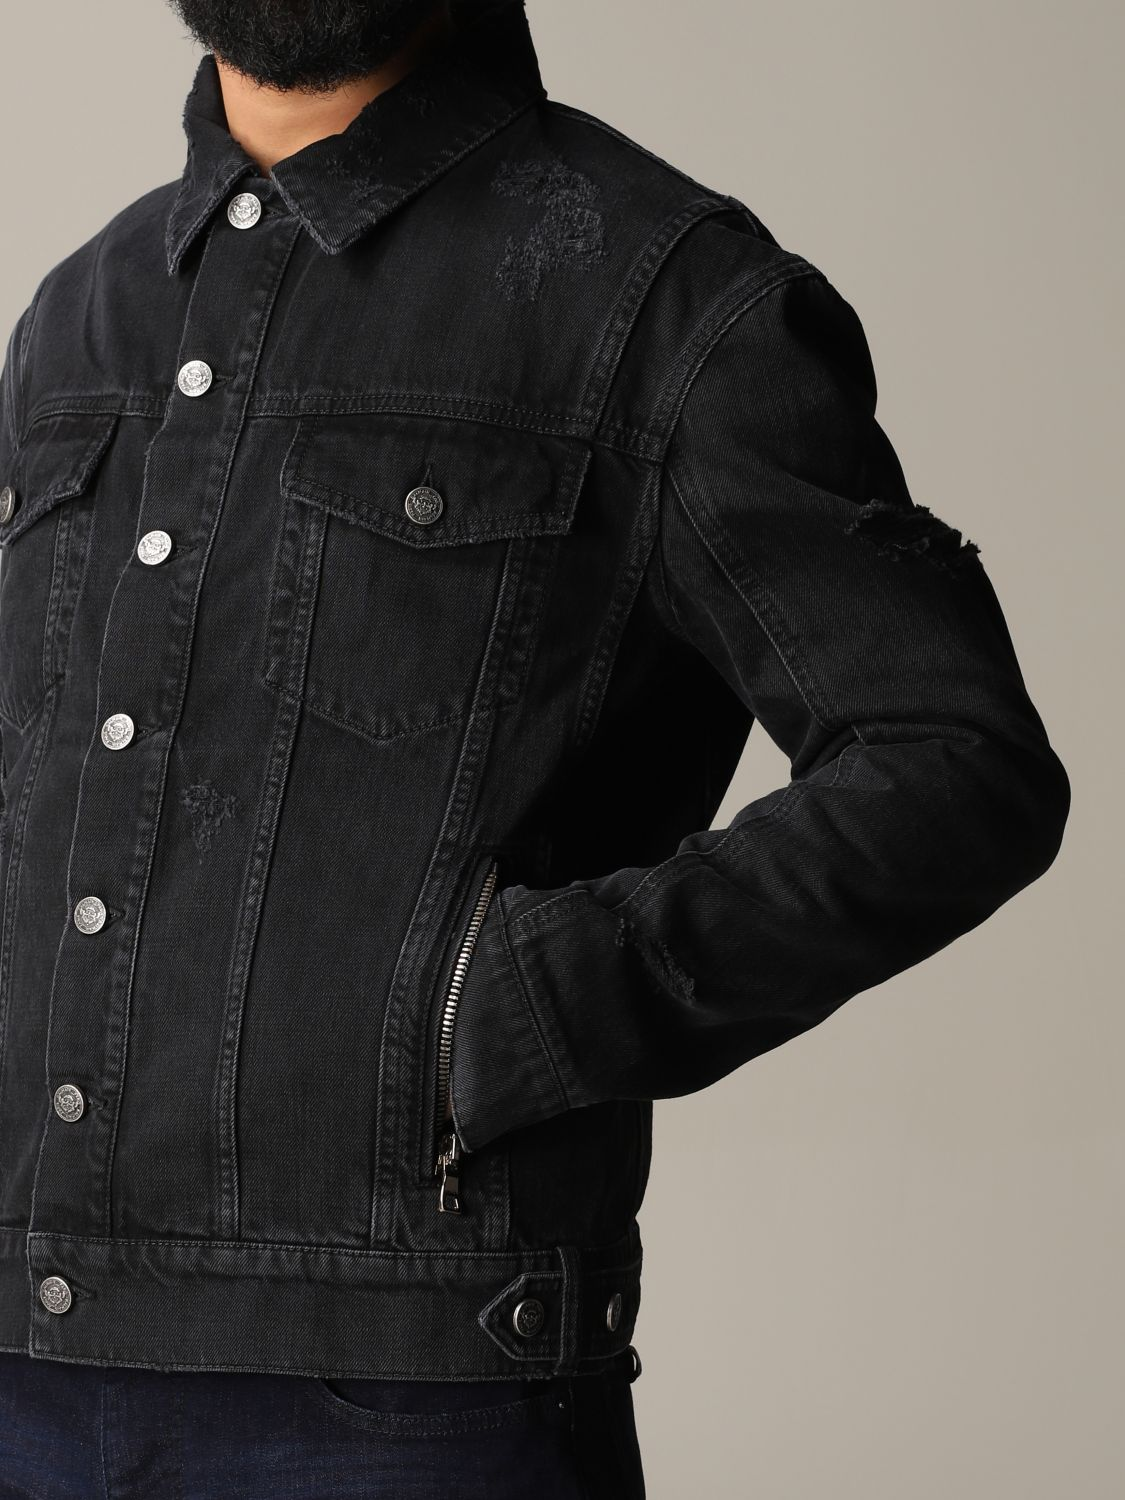 Jacket Balmain: Balmain denim jacket in denim with back logo black 5